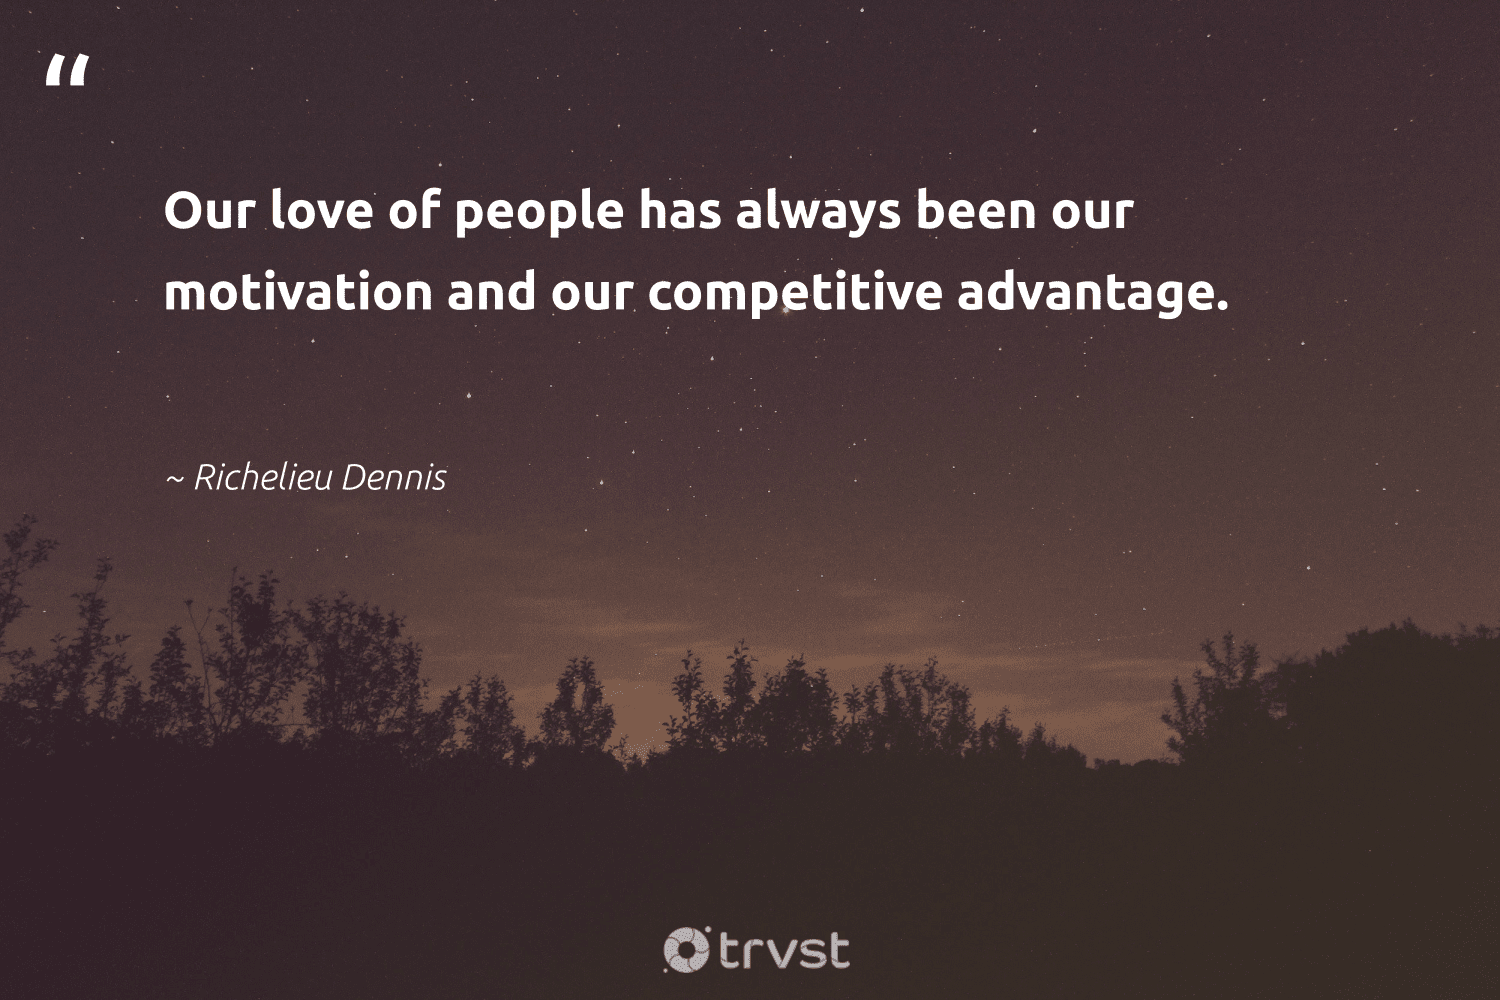 """""""Our love of people has always been our motivation and our competitive advantage.""""  - Richelieu Dennis #trvst #quotes #love #motivation #positivity #keepitup #changemakers #impact #creativemindset #believeinyourself #begreat #dosomething"""